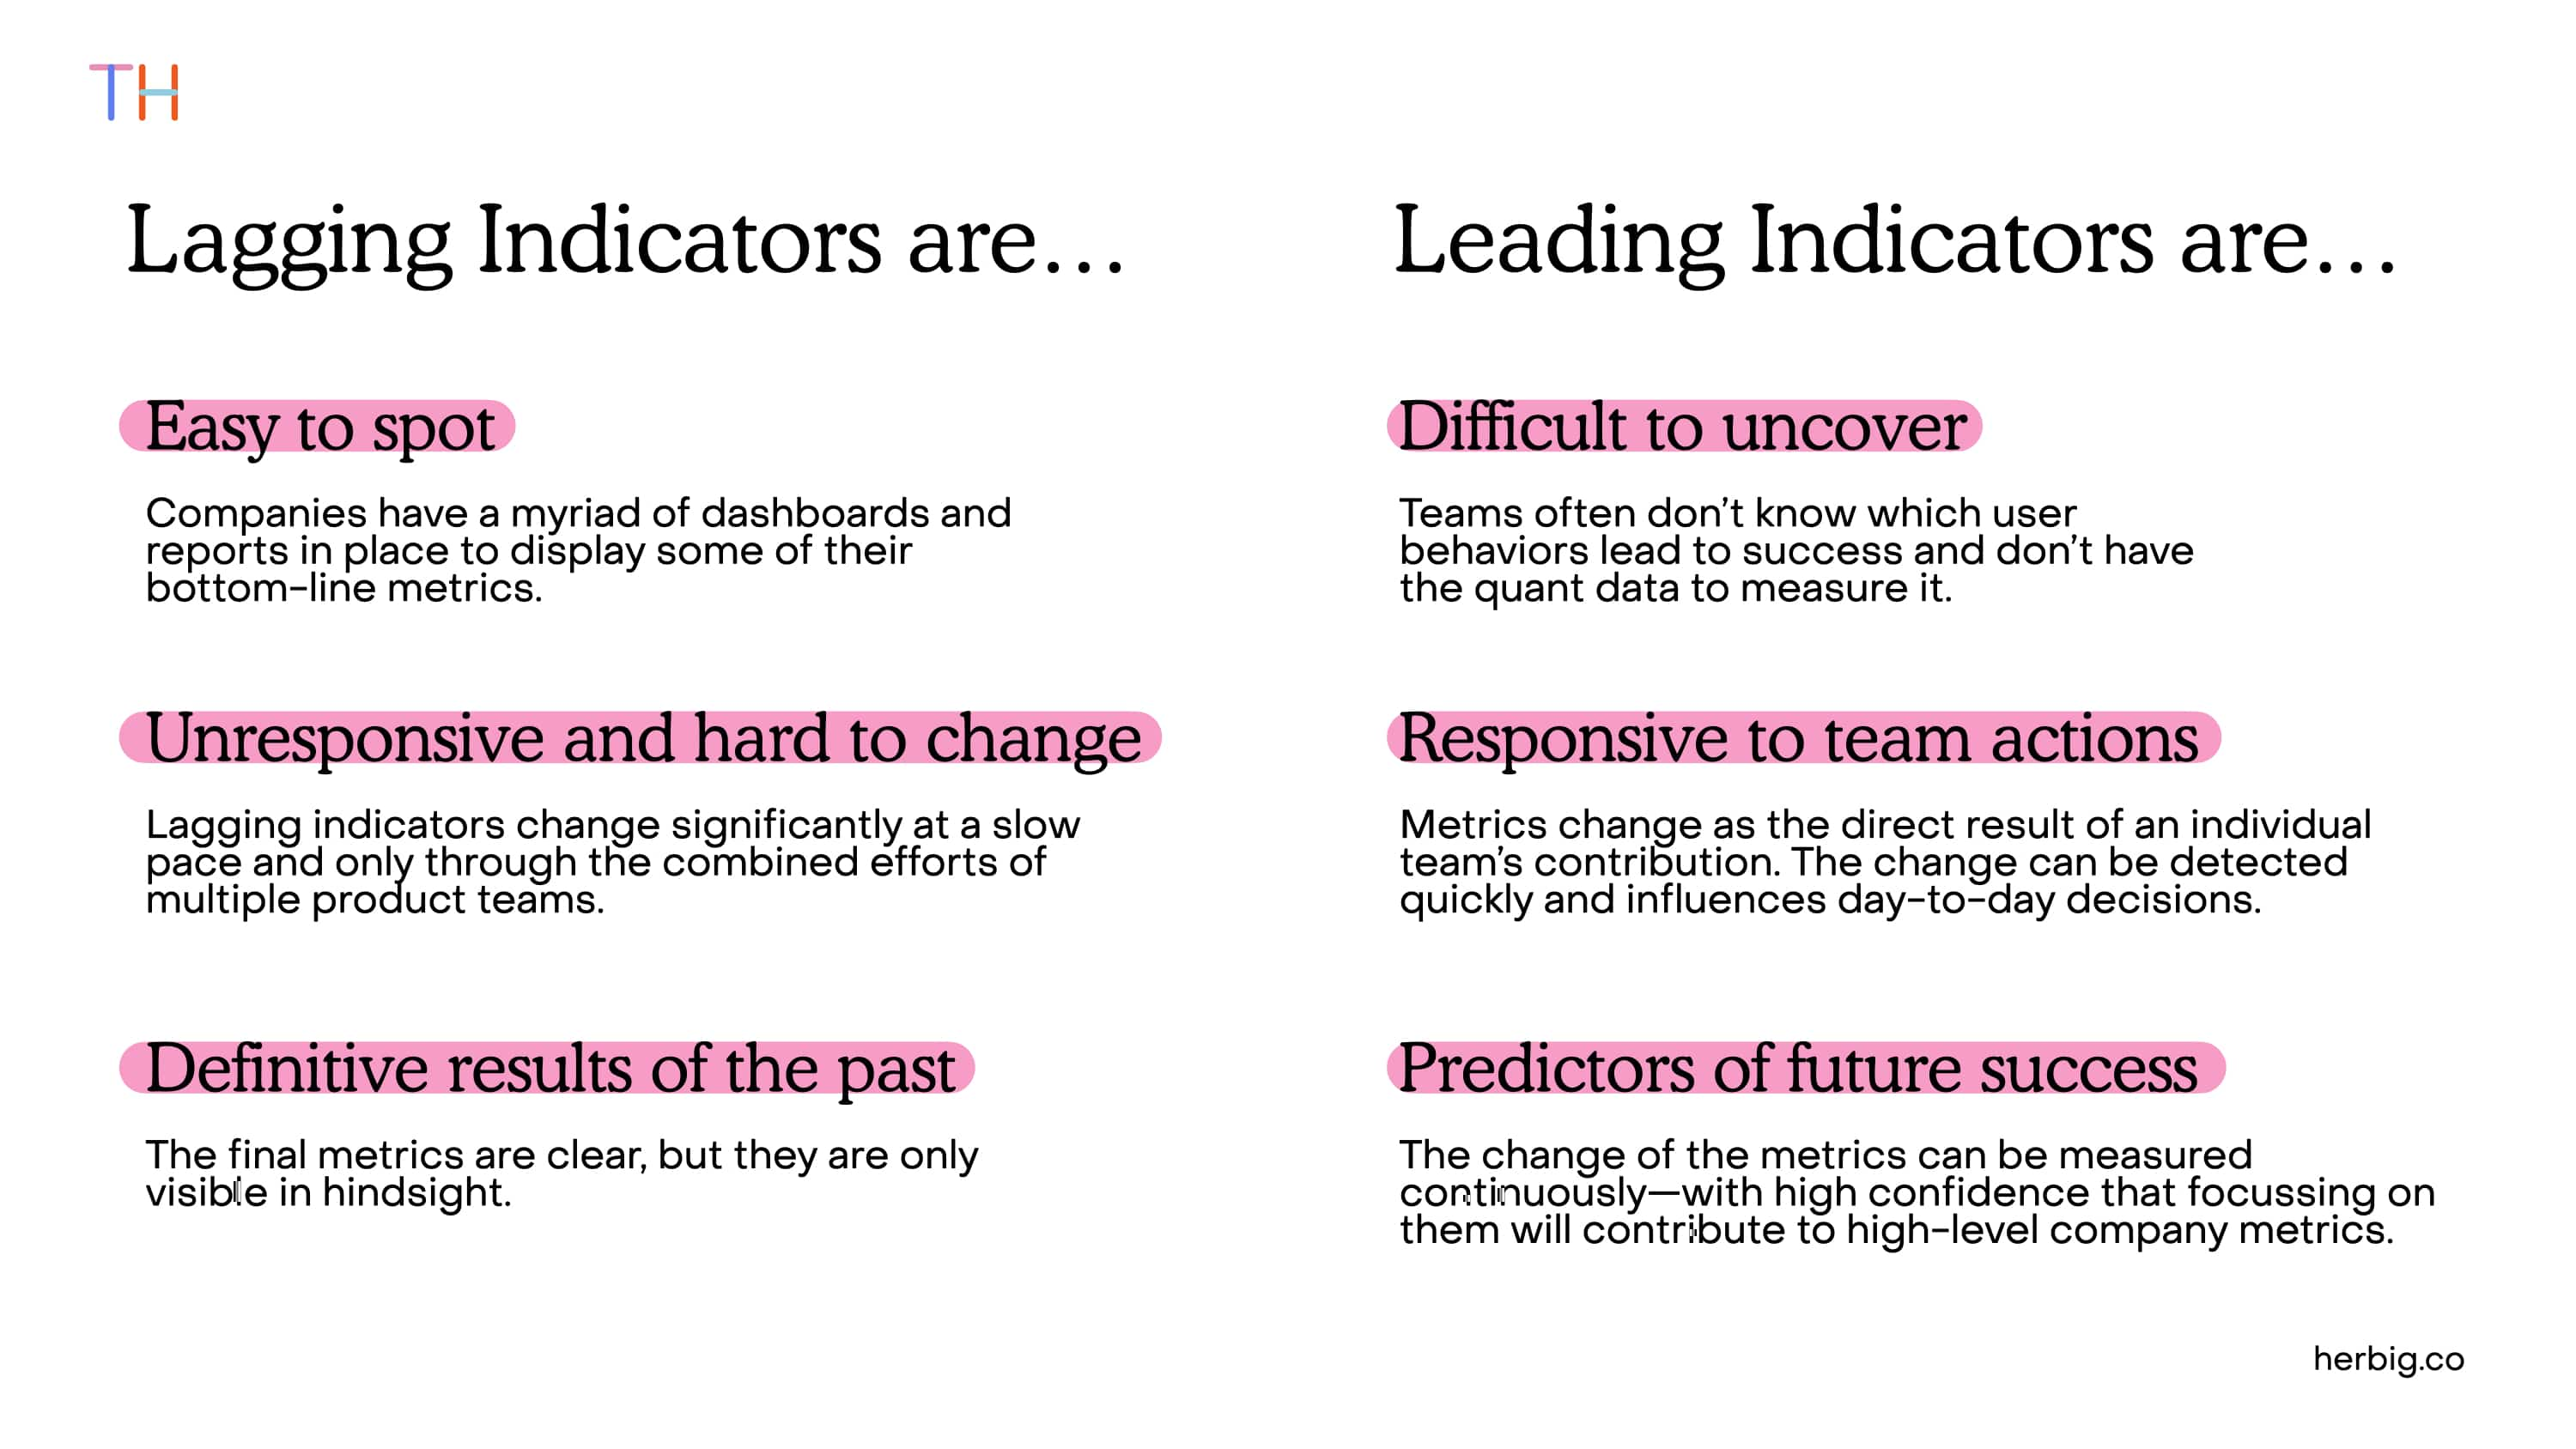 Difference between Leading and Lagging Indicators